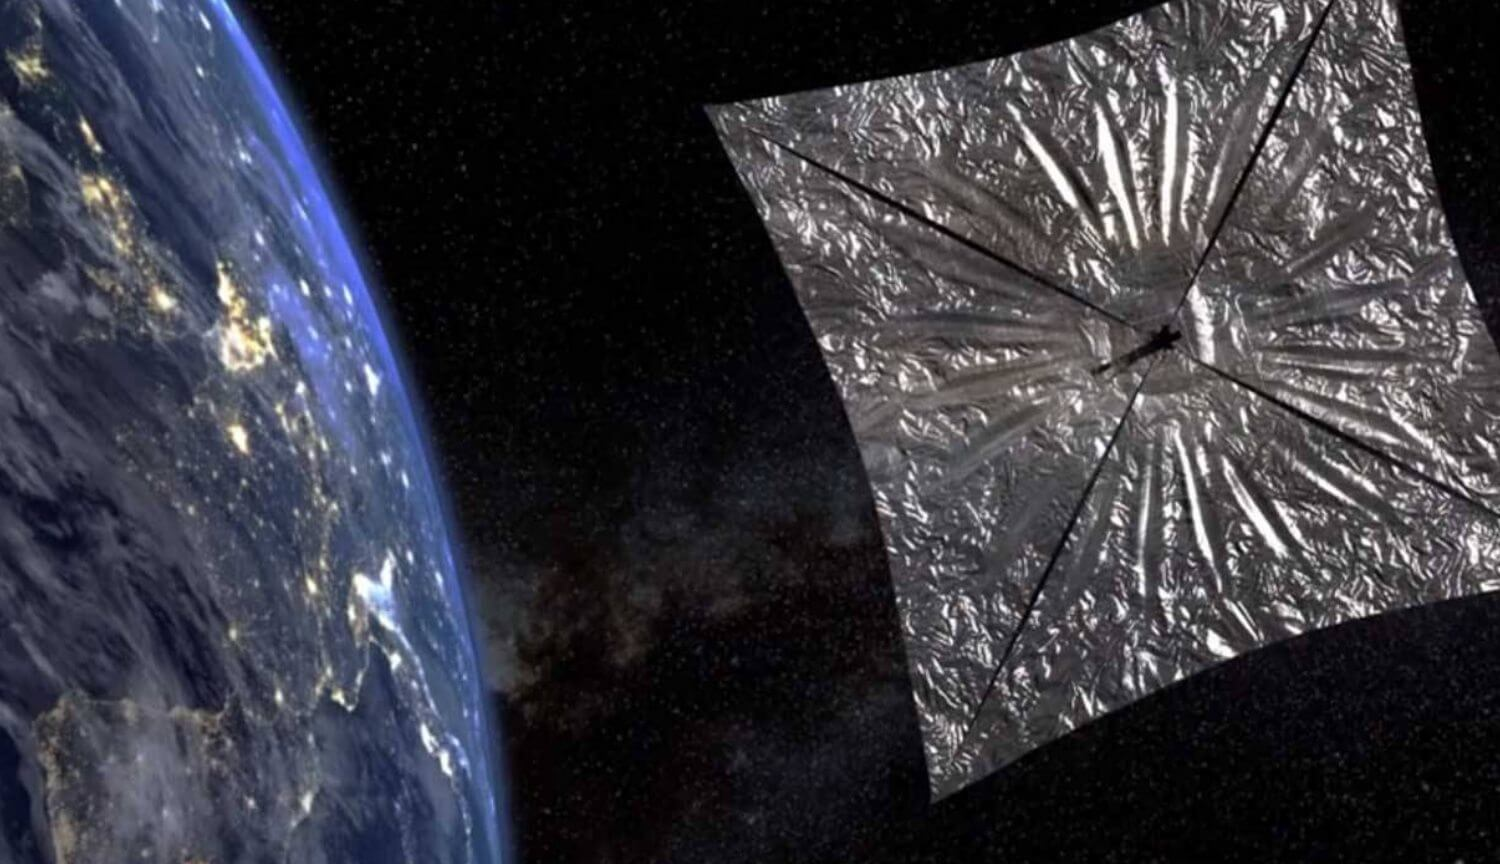 Above Ground opened a huge solar sail LightSail 2